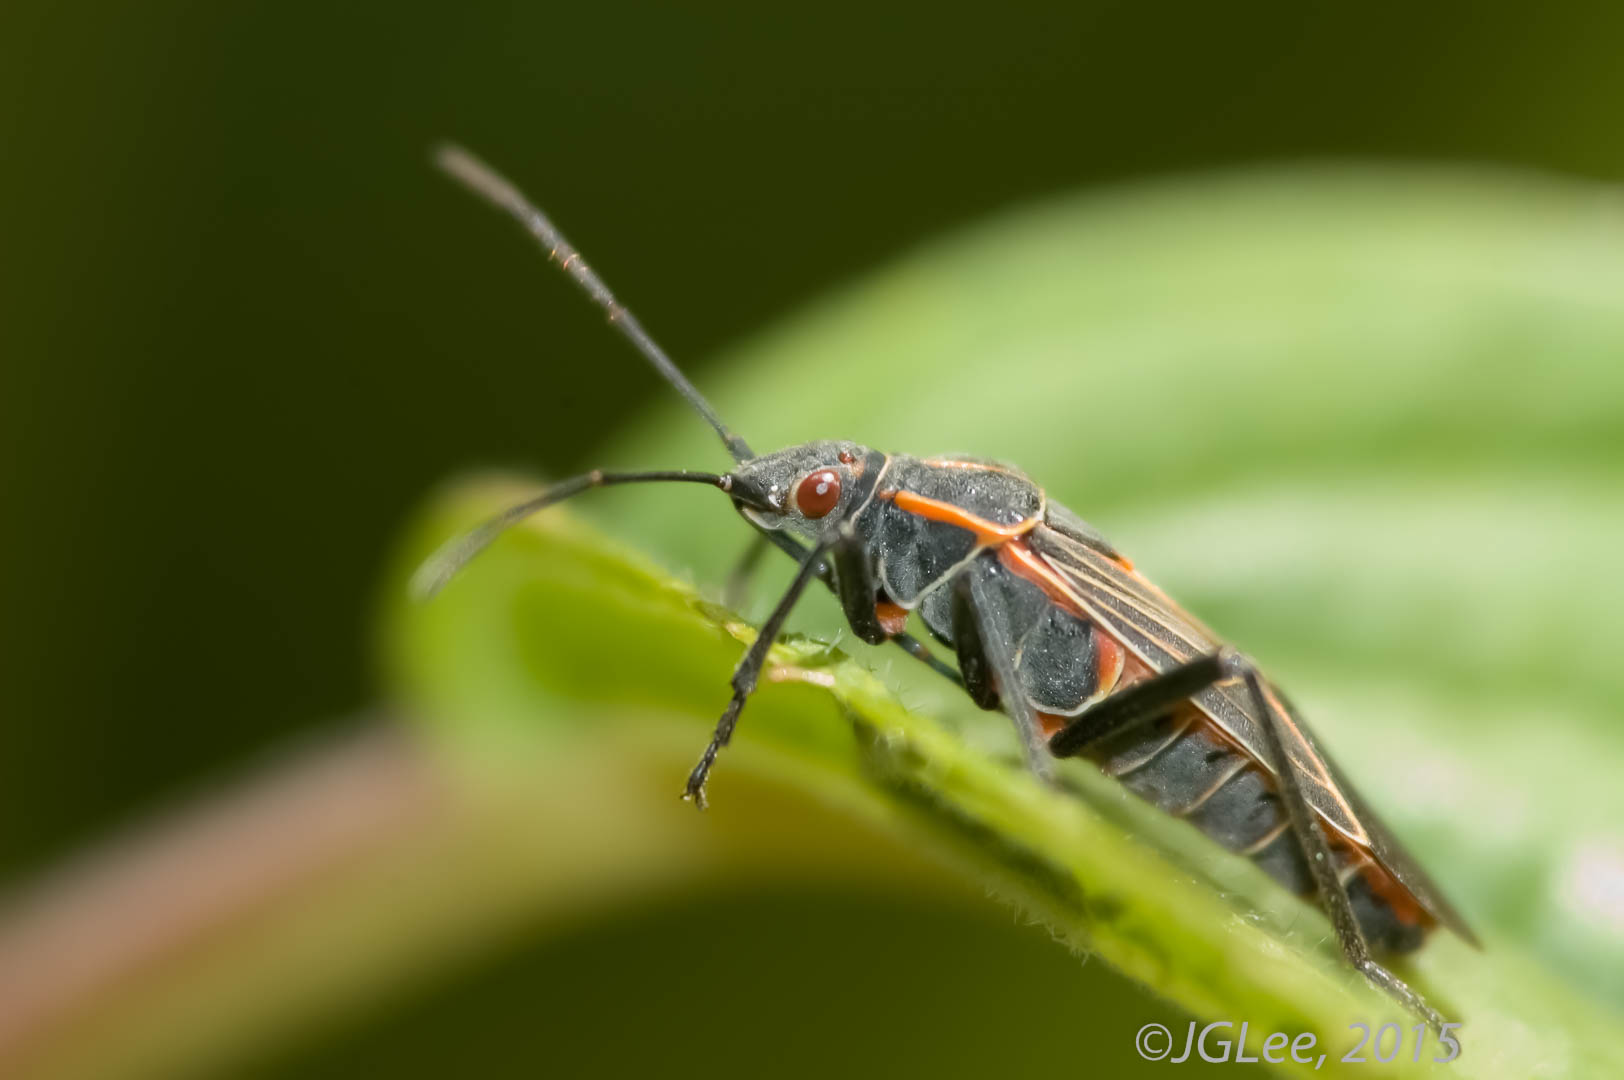 Bug on a leaf